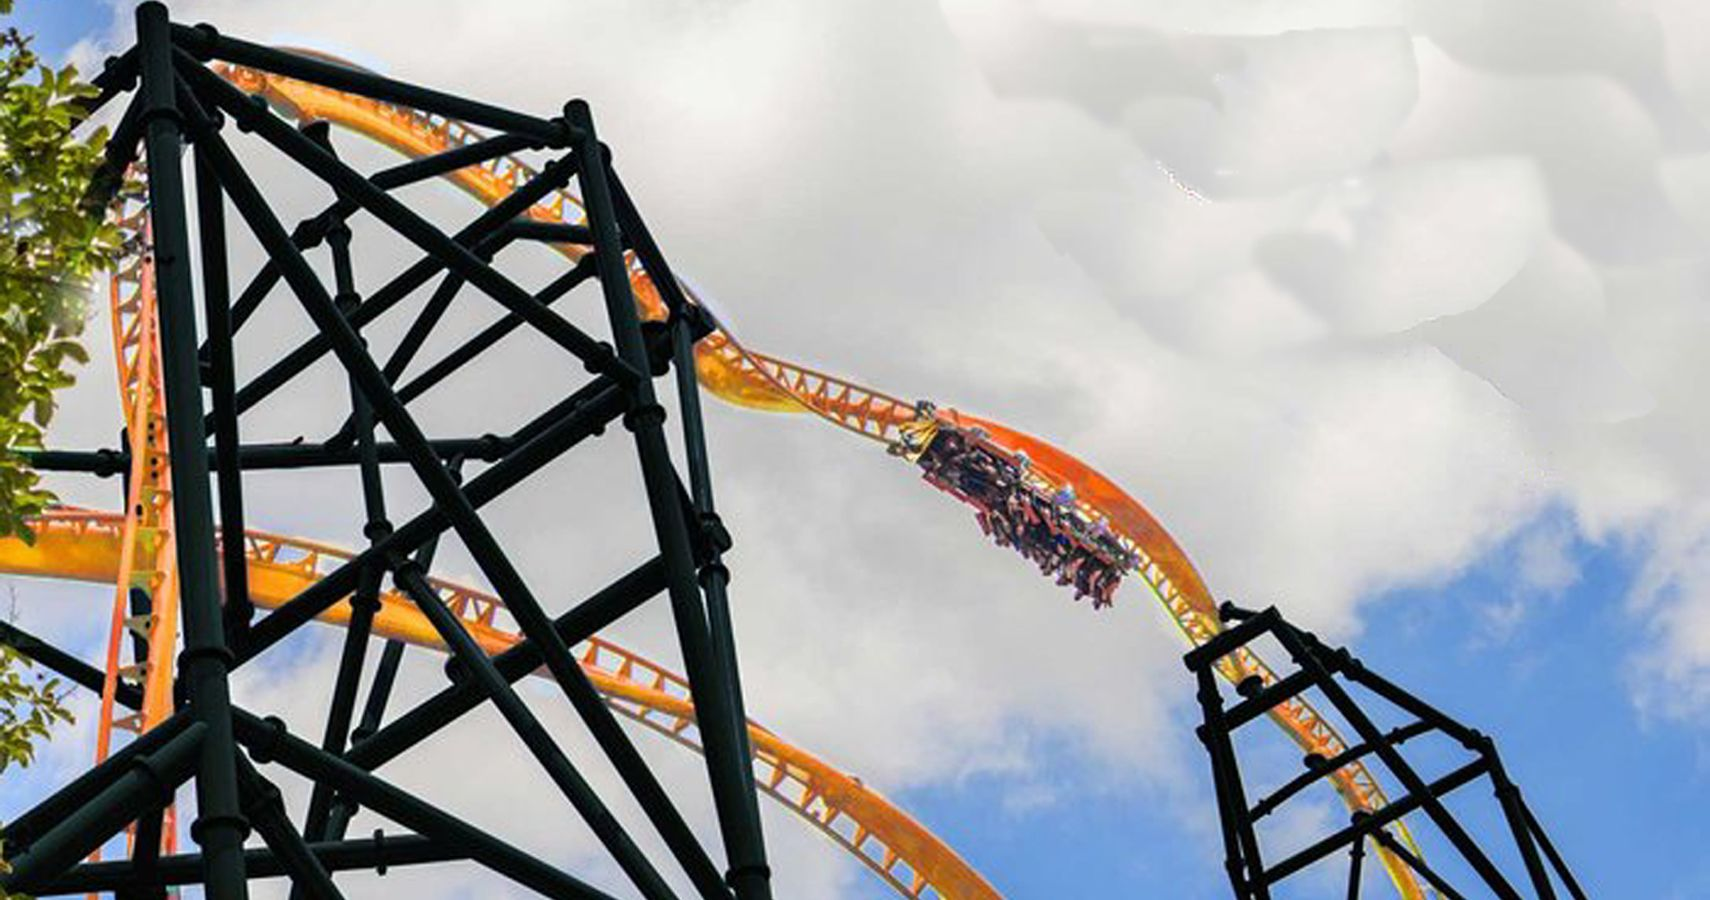 Fling 150 feet backwards in the air with florida 39 s tallest launch roller coaster for Busch gardens height restrictions